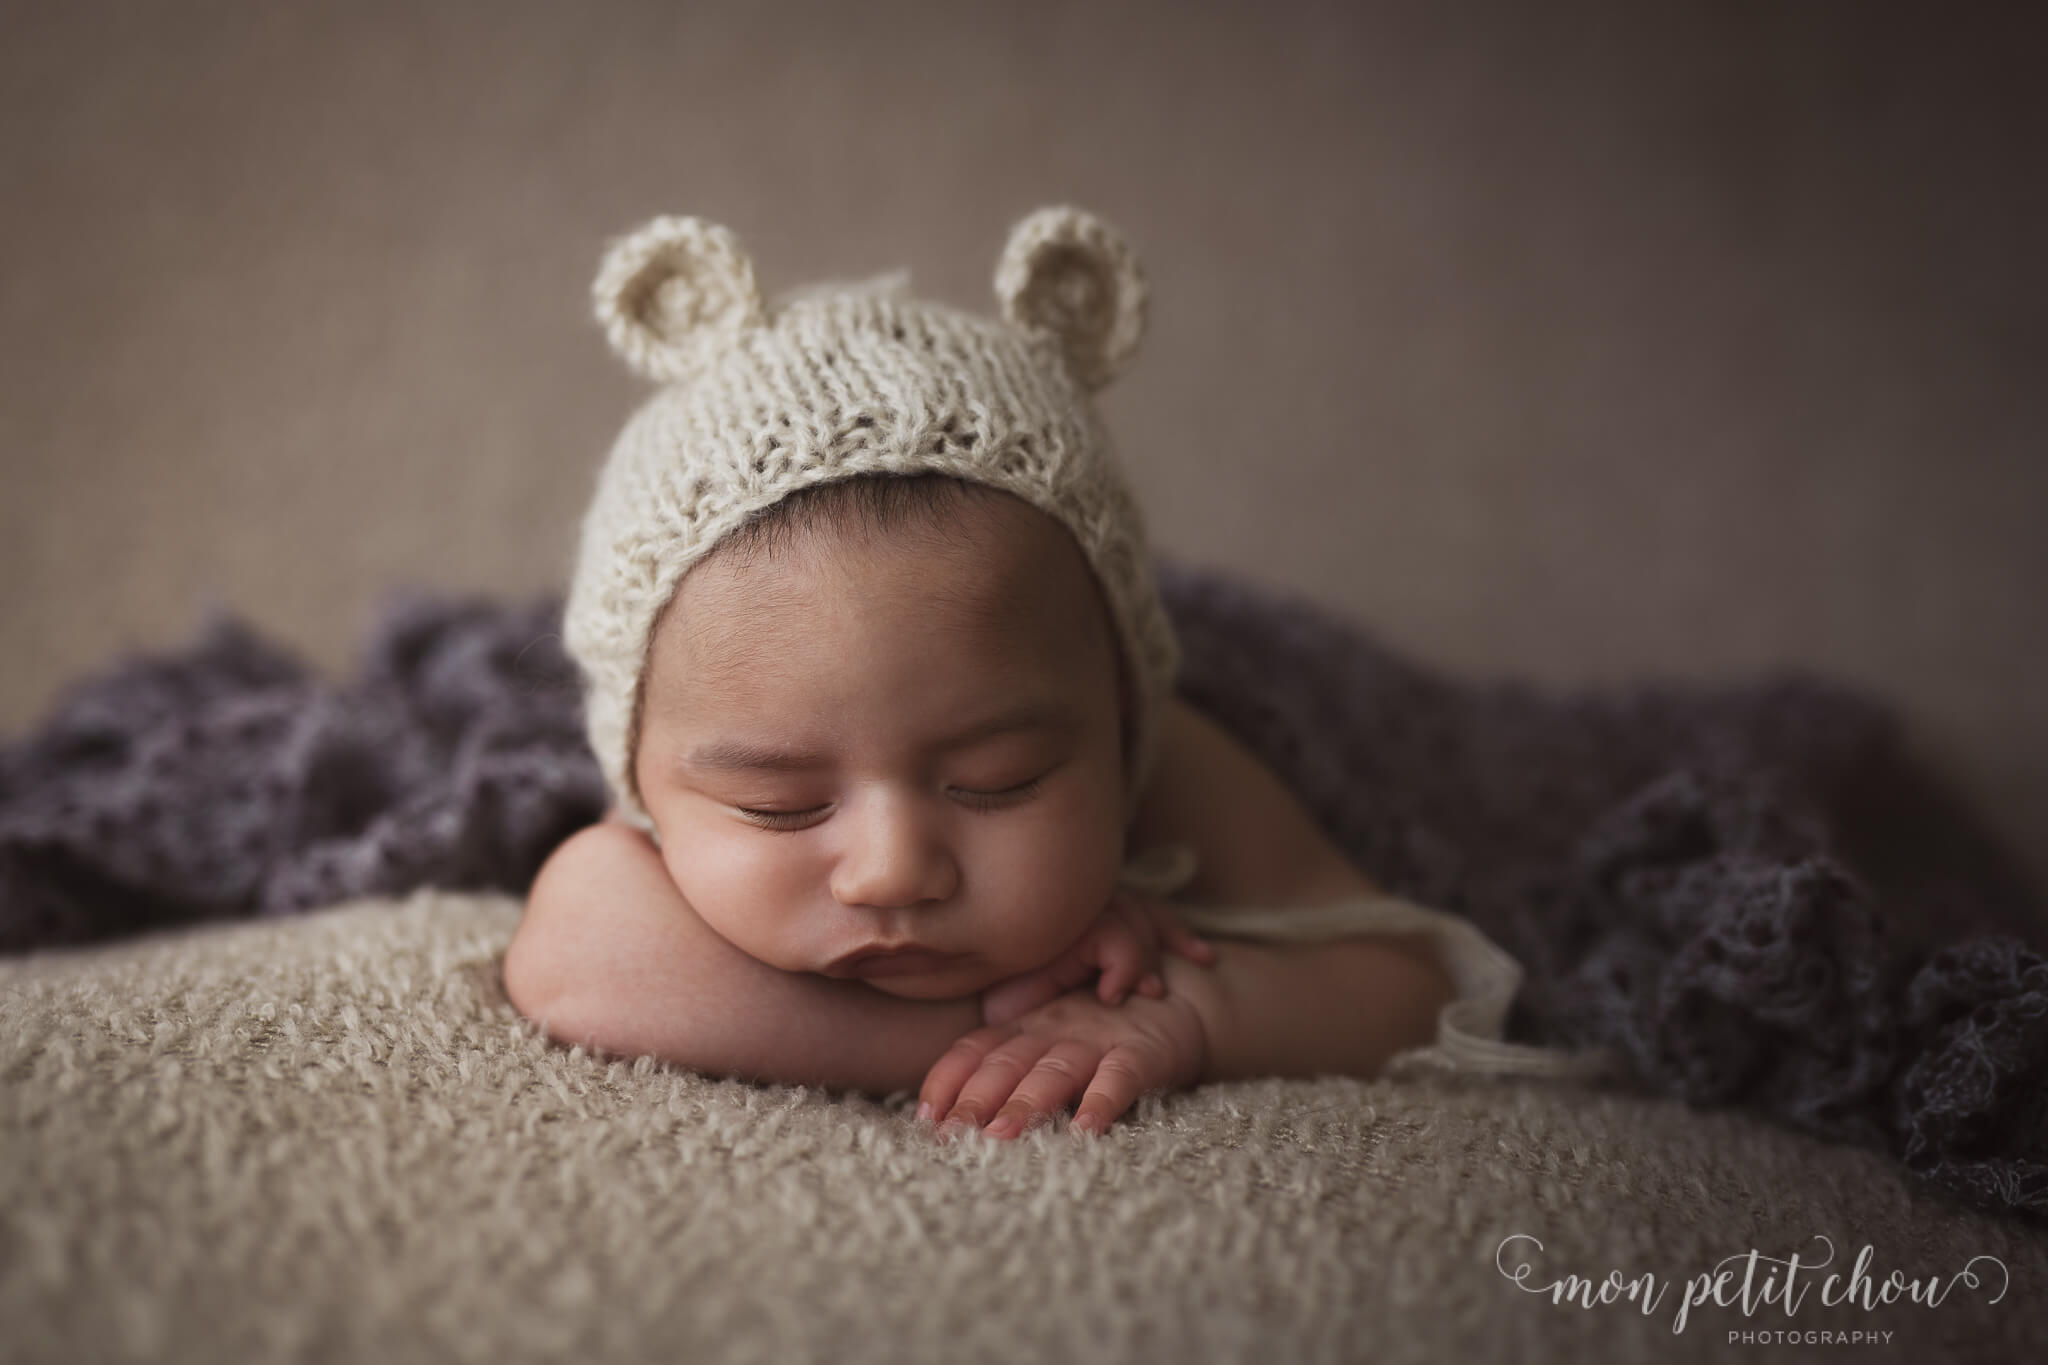 Pretty newborn baby girl in a bunny hat covered by a blanket.